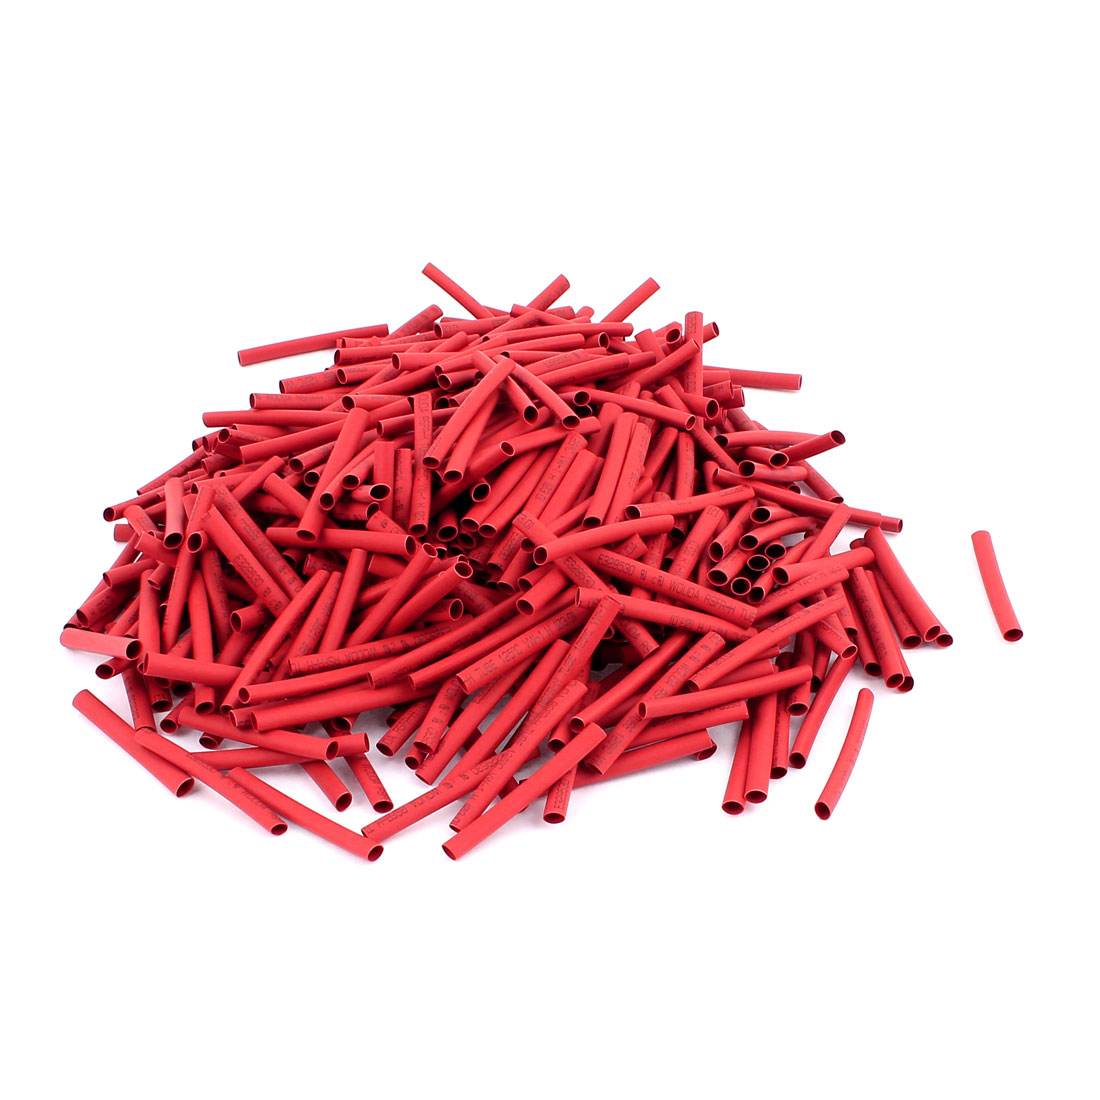 40mm Long Electrical Connection Cable Sleeve Heat Shrink Wrap Tubing Red 500Pcs